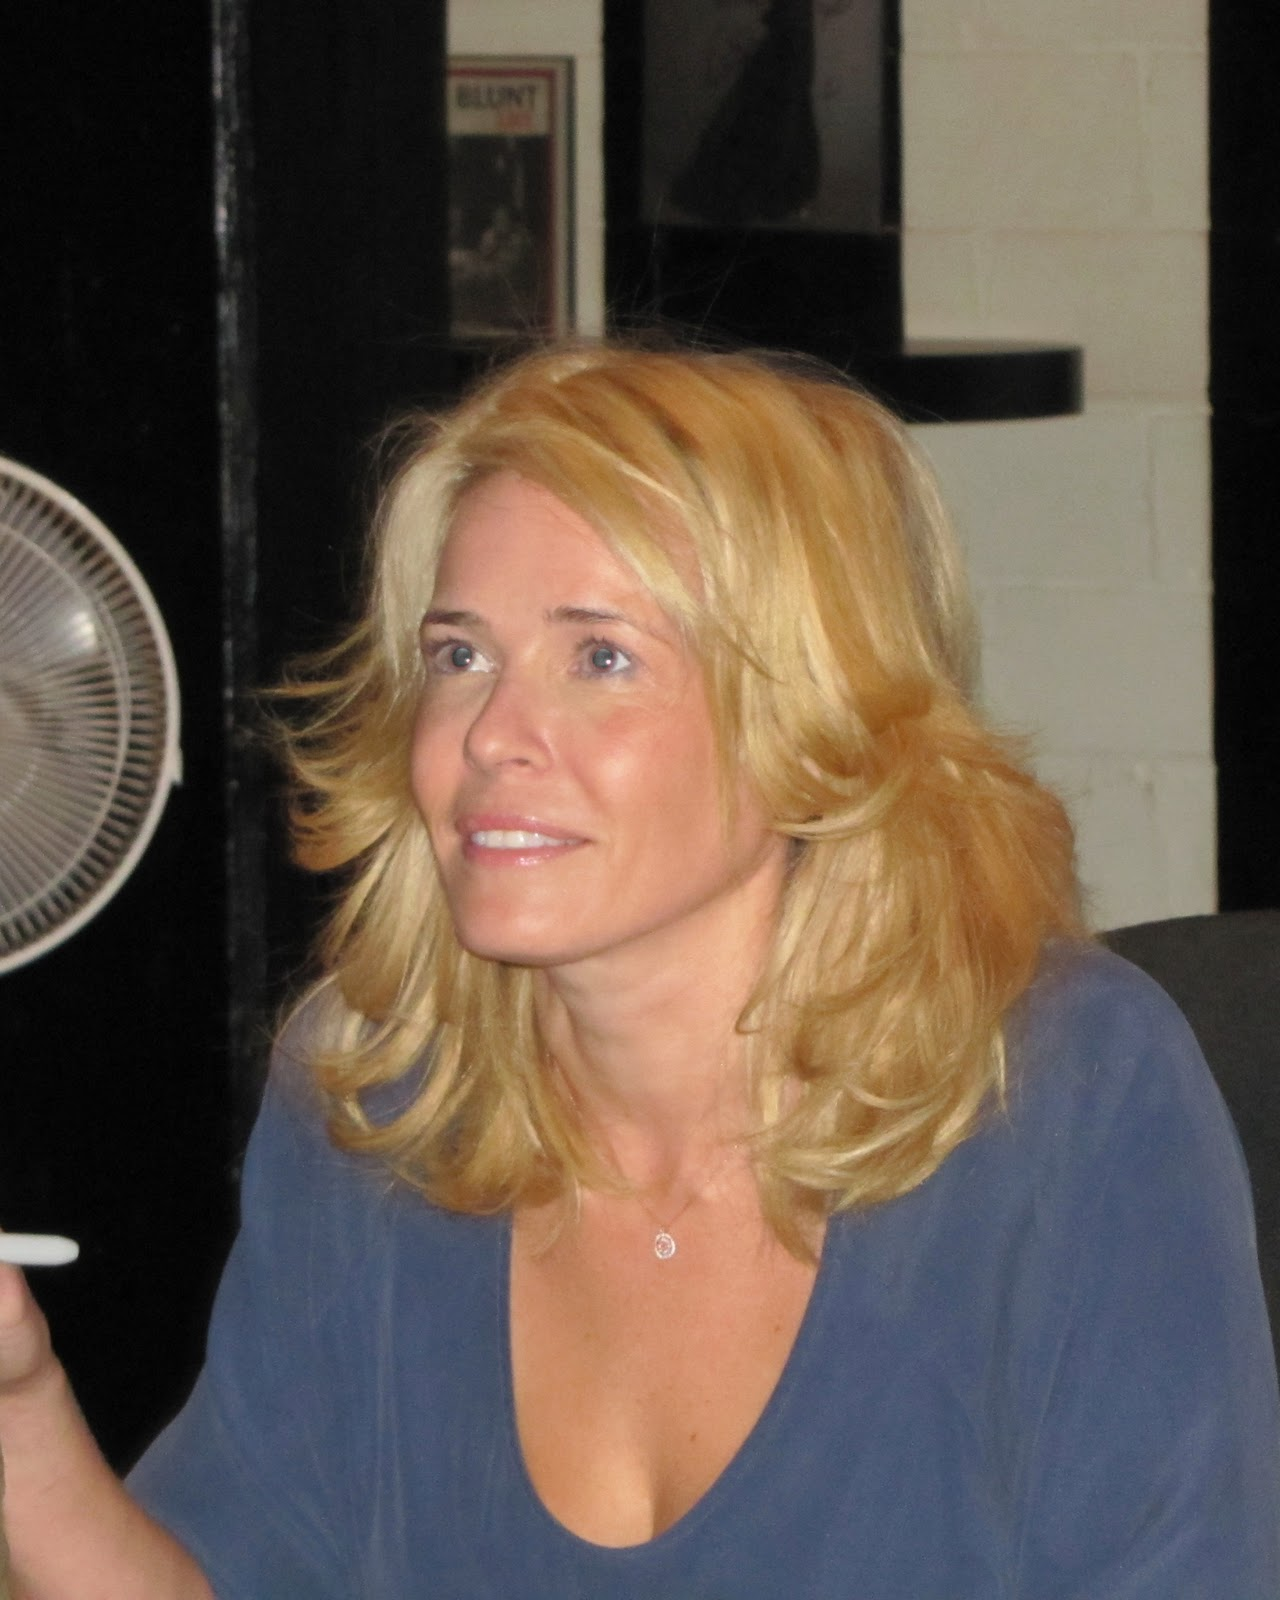 CHELSEA HANDLER IN TORONTO FOR QuotCHELSEA CHELSEA BANG BANGquot TOUR